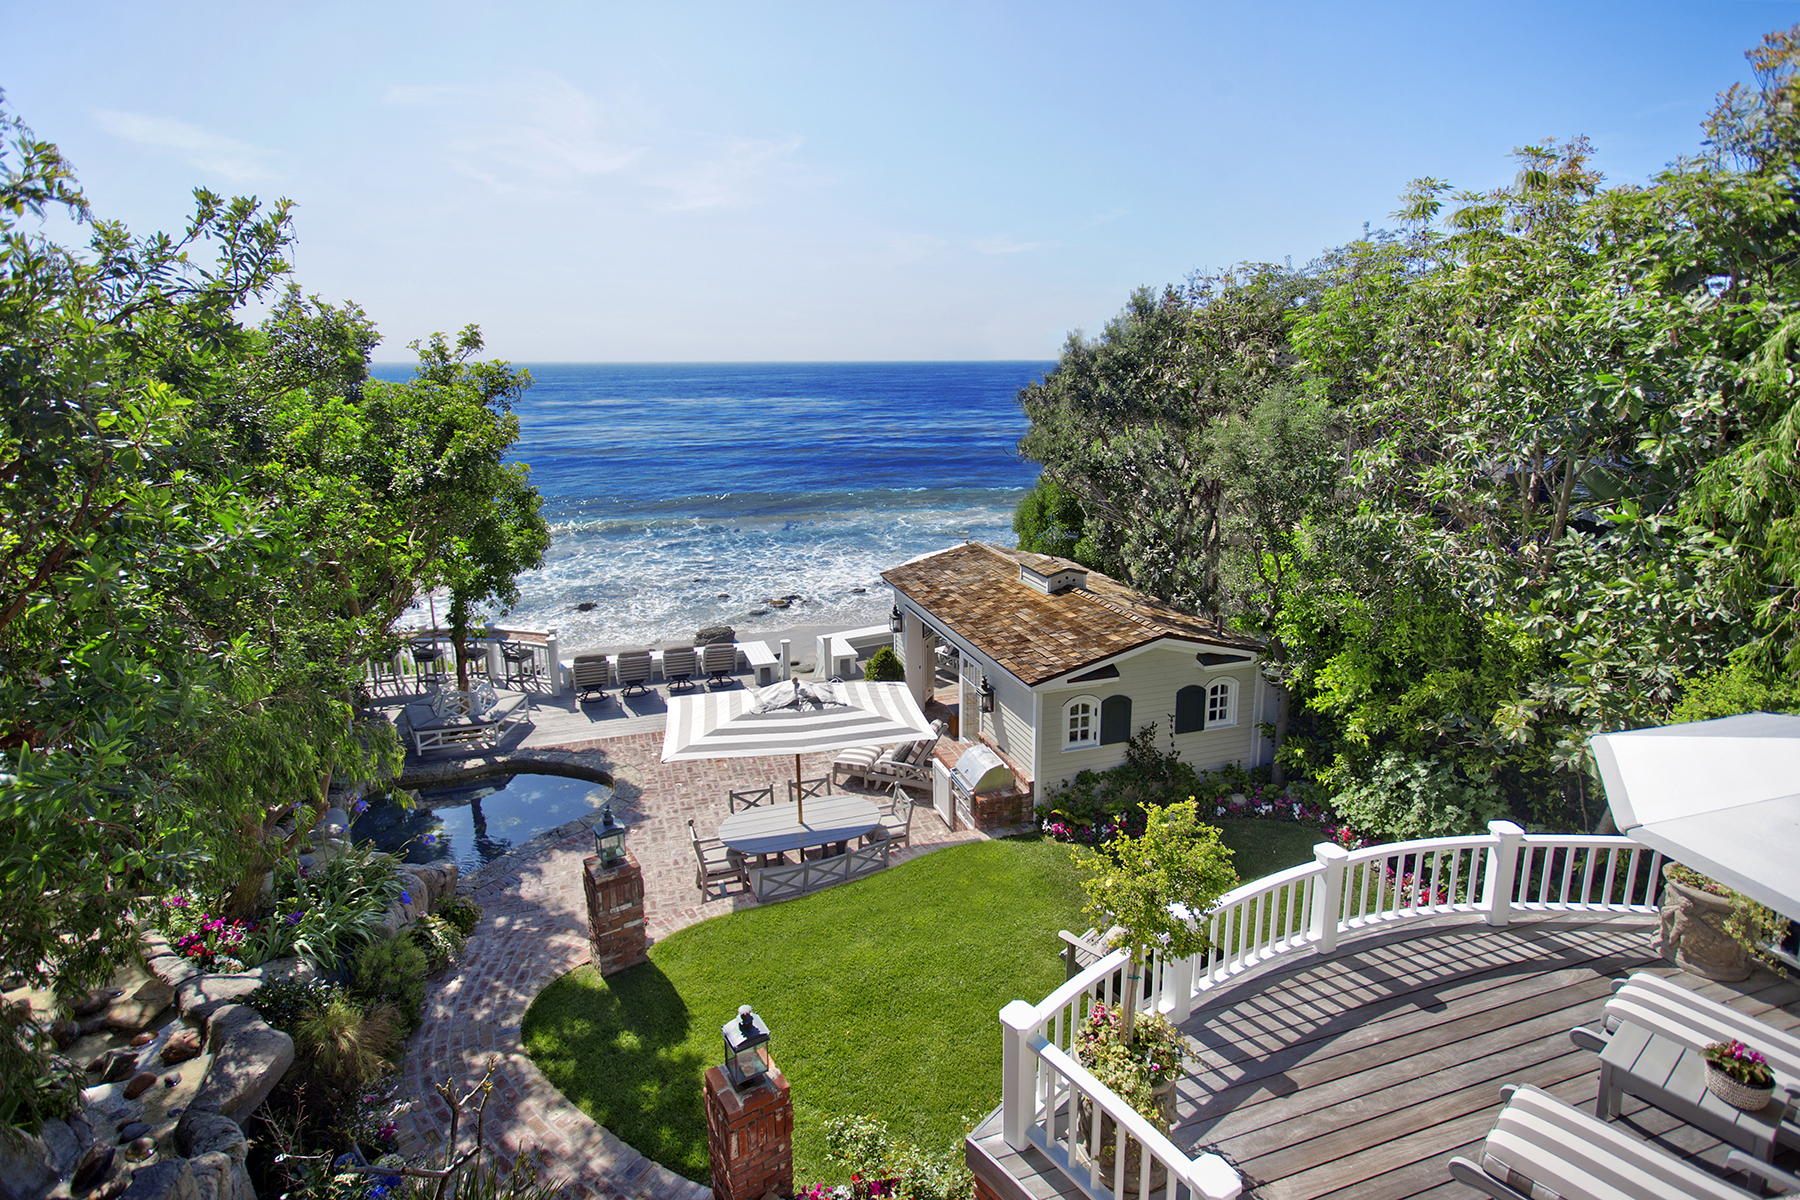 Maison unifamiliale pour l Vente à 671 Sleepy Hollow Lane Laguna Beach, Californie, 92651 États-Unis